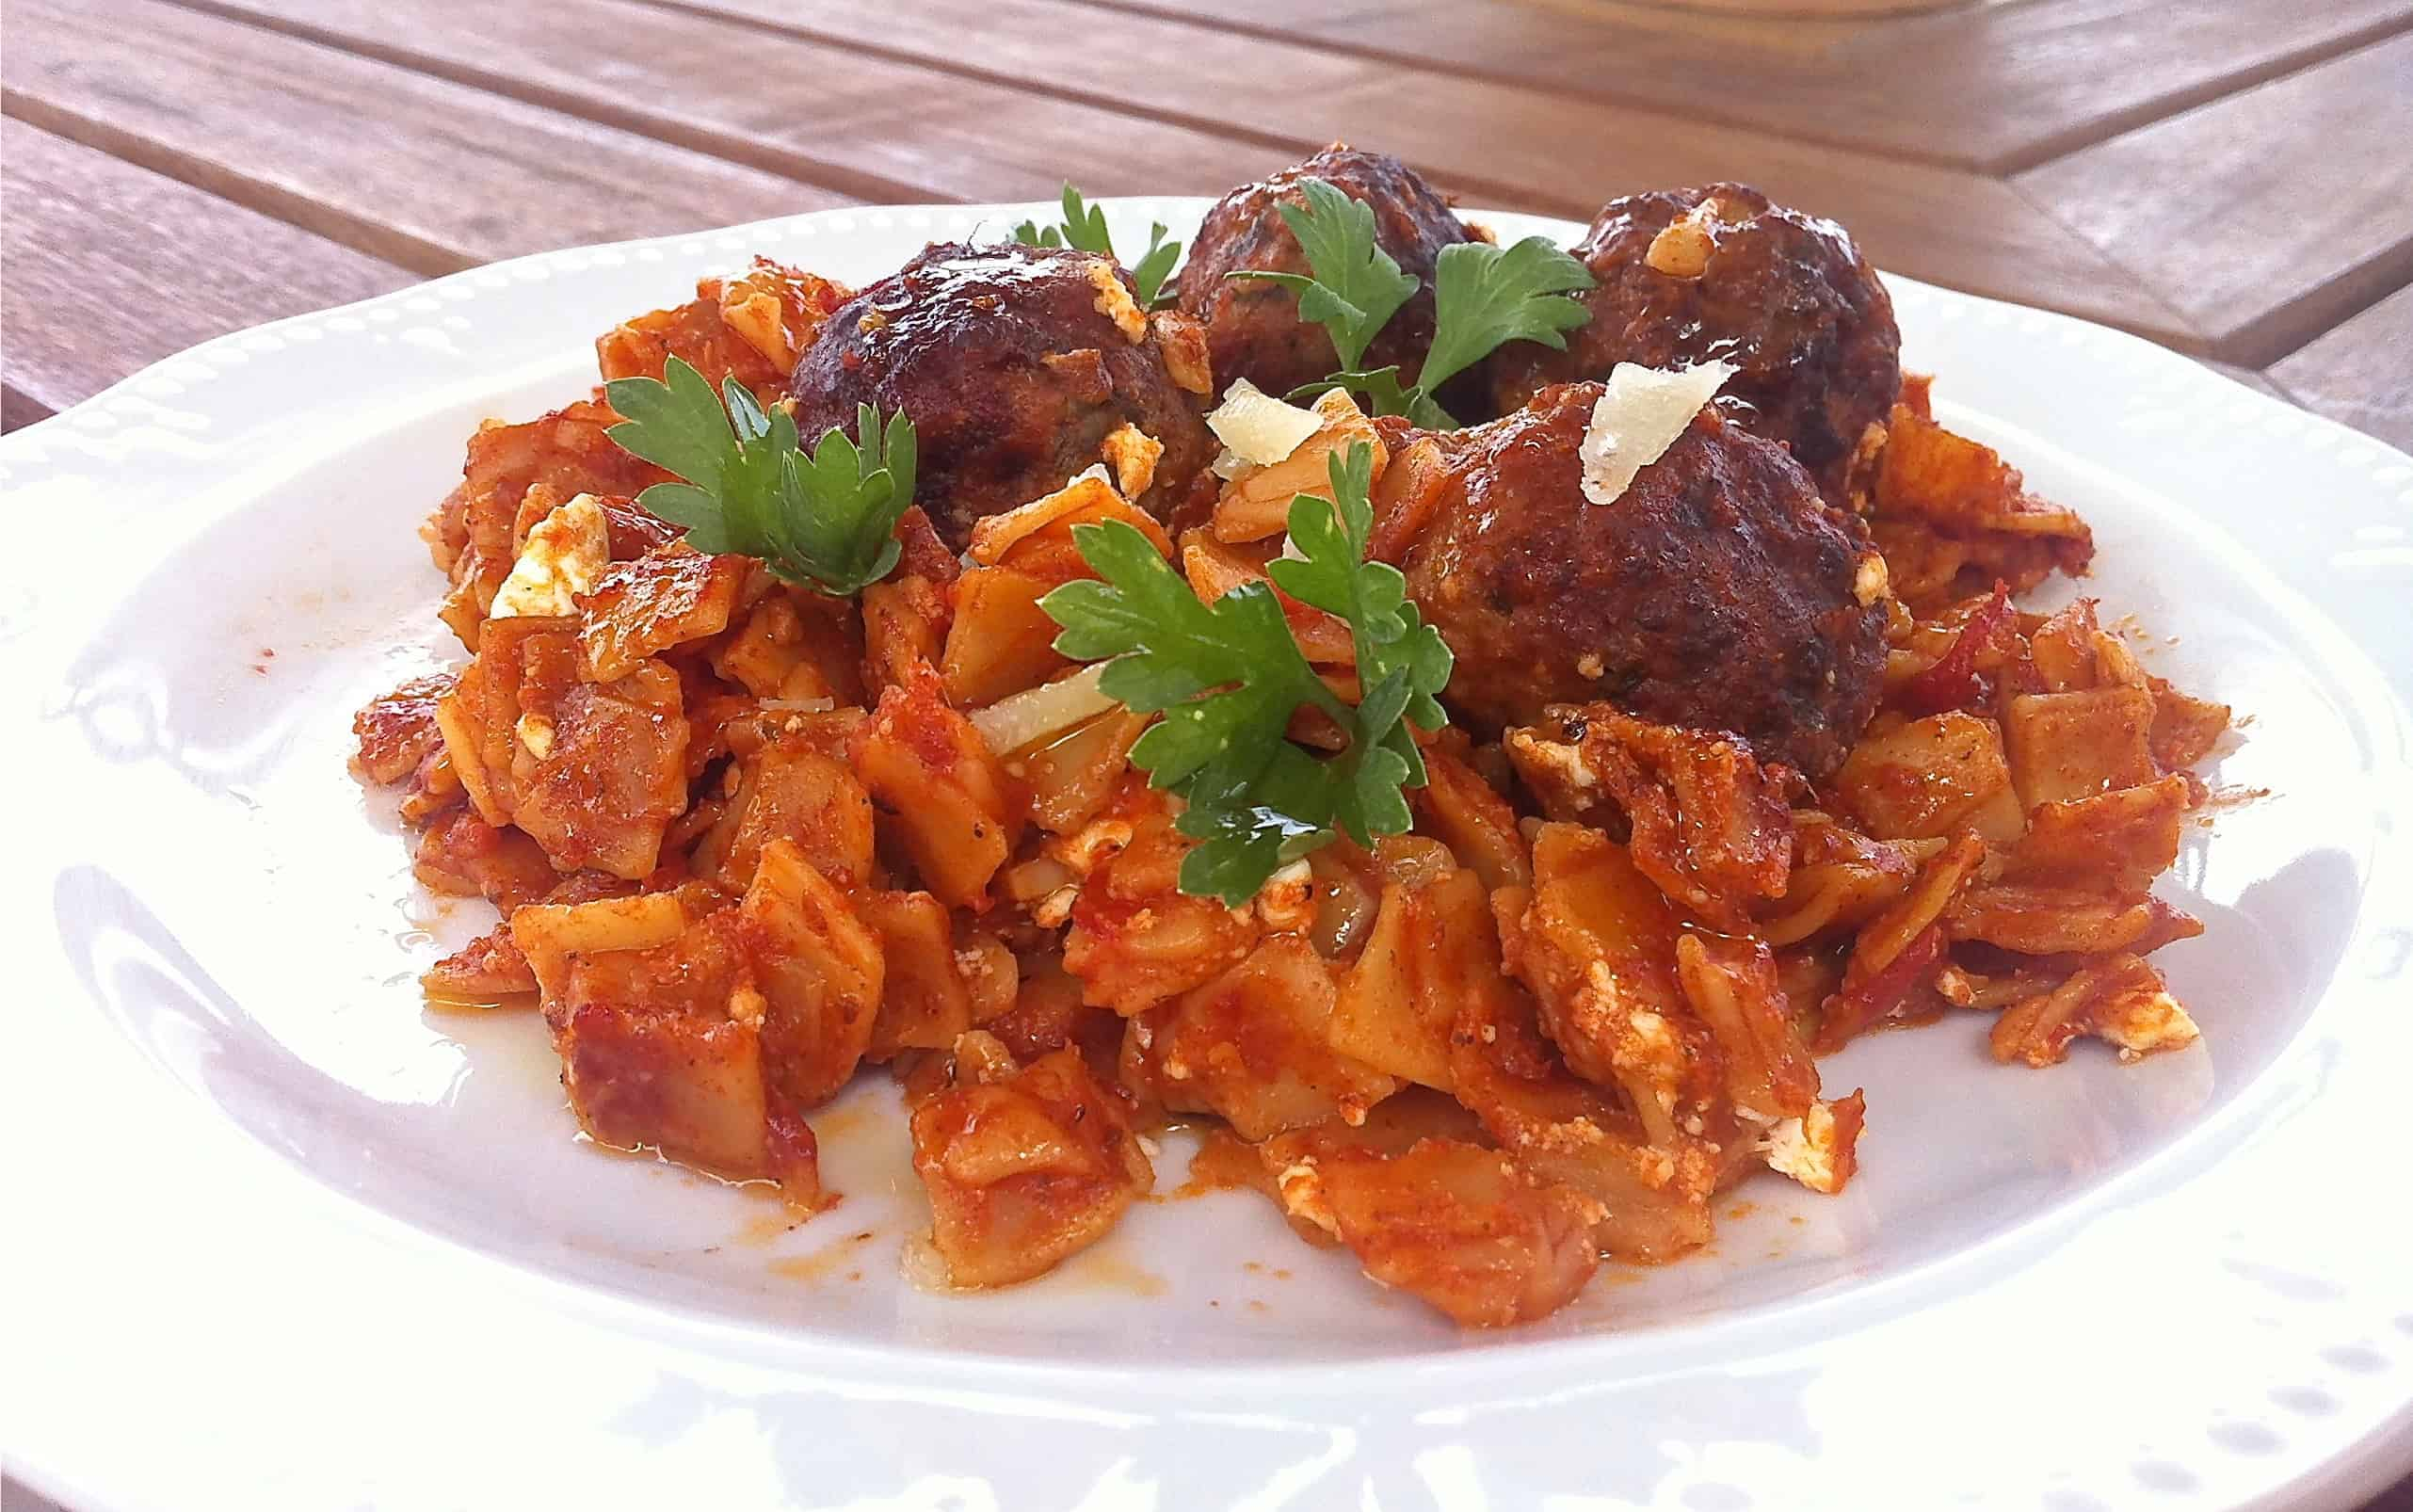 Greek Meatballs in Tomato Sauce (Keftedakia Giouvetsi) - My Greek Dish